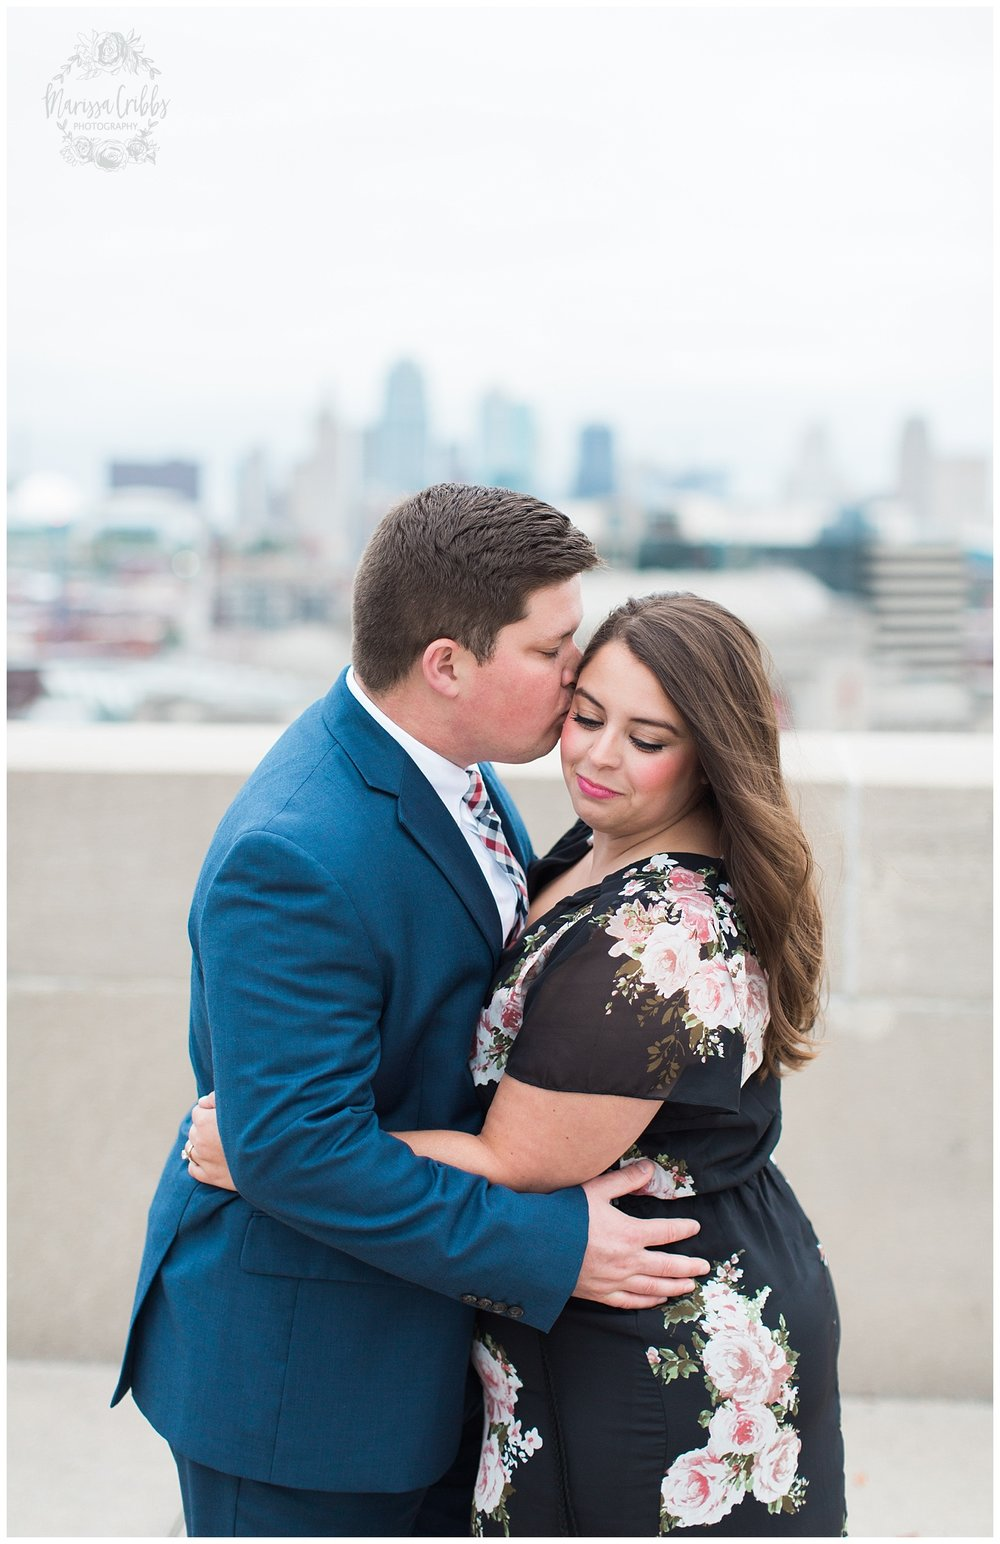 ANDREA & MICHAEL ENGAGEMENT | LIBERTY MEMORIAL ENGAGEMENT PHOTOGRAPHY | MARISSA CRIBBS PHOTOGRAPHY_3045.jpg